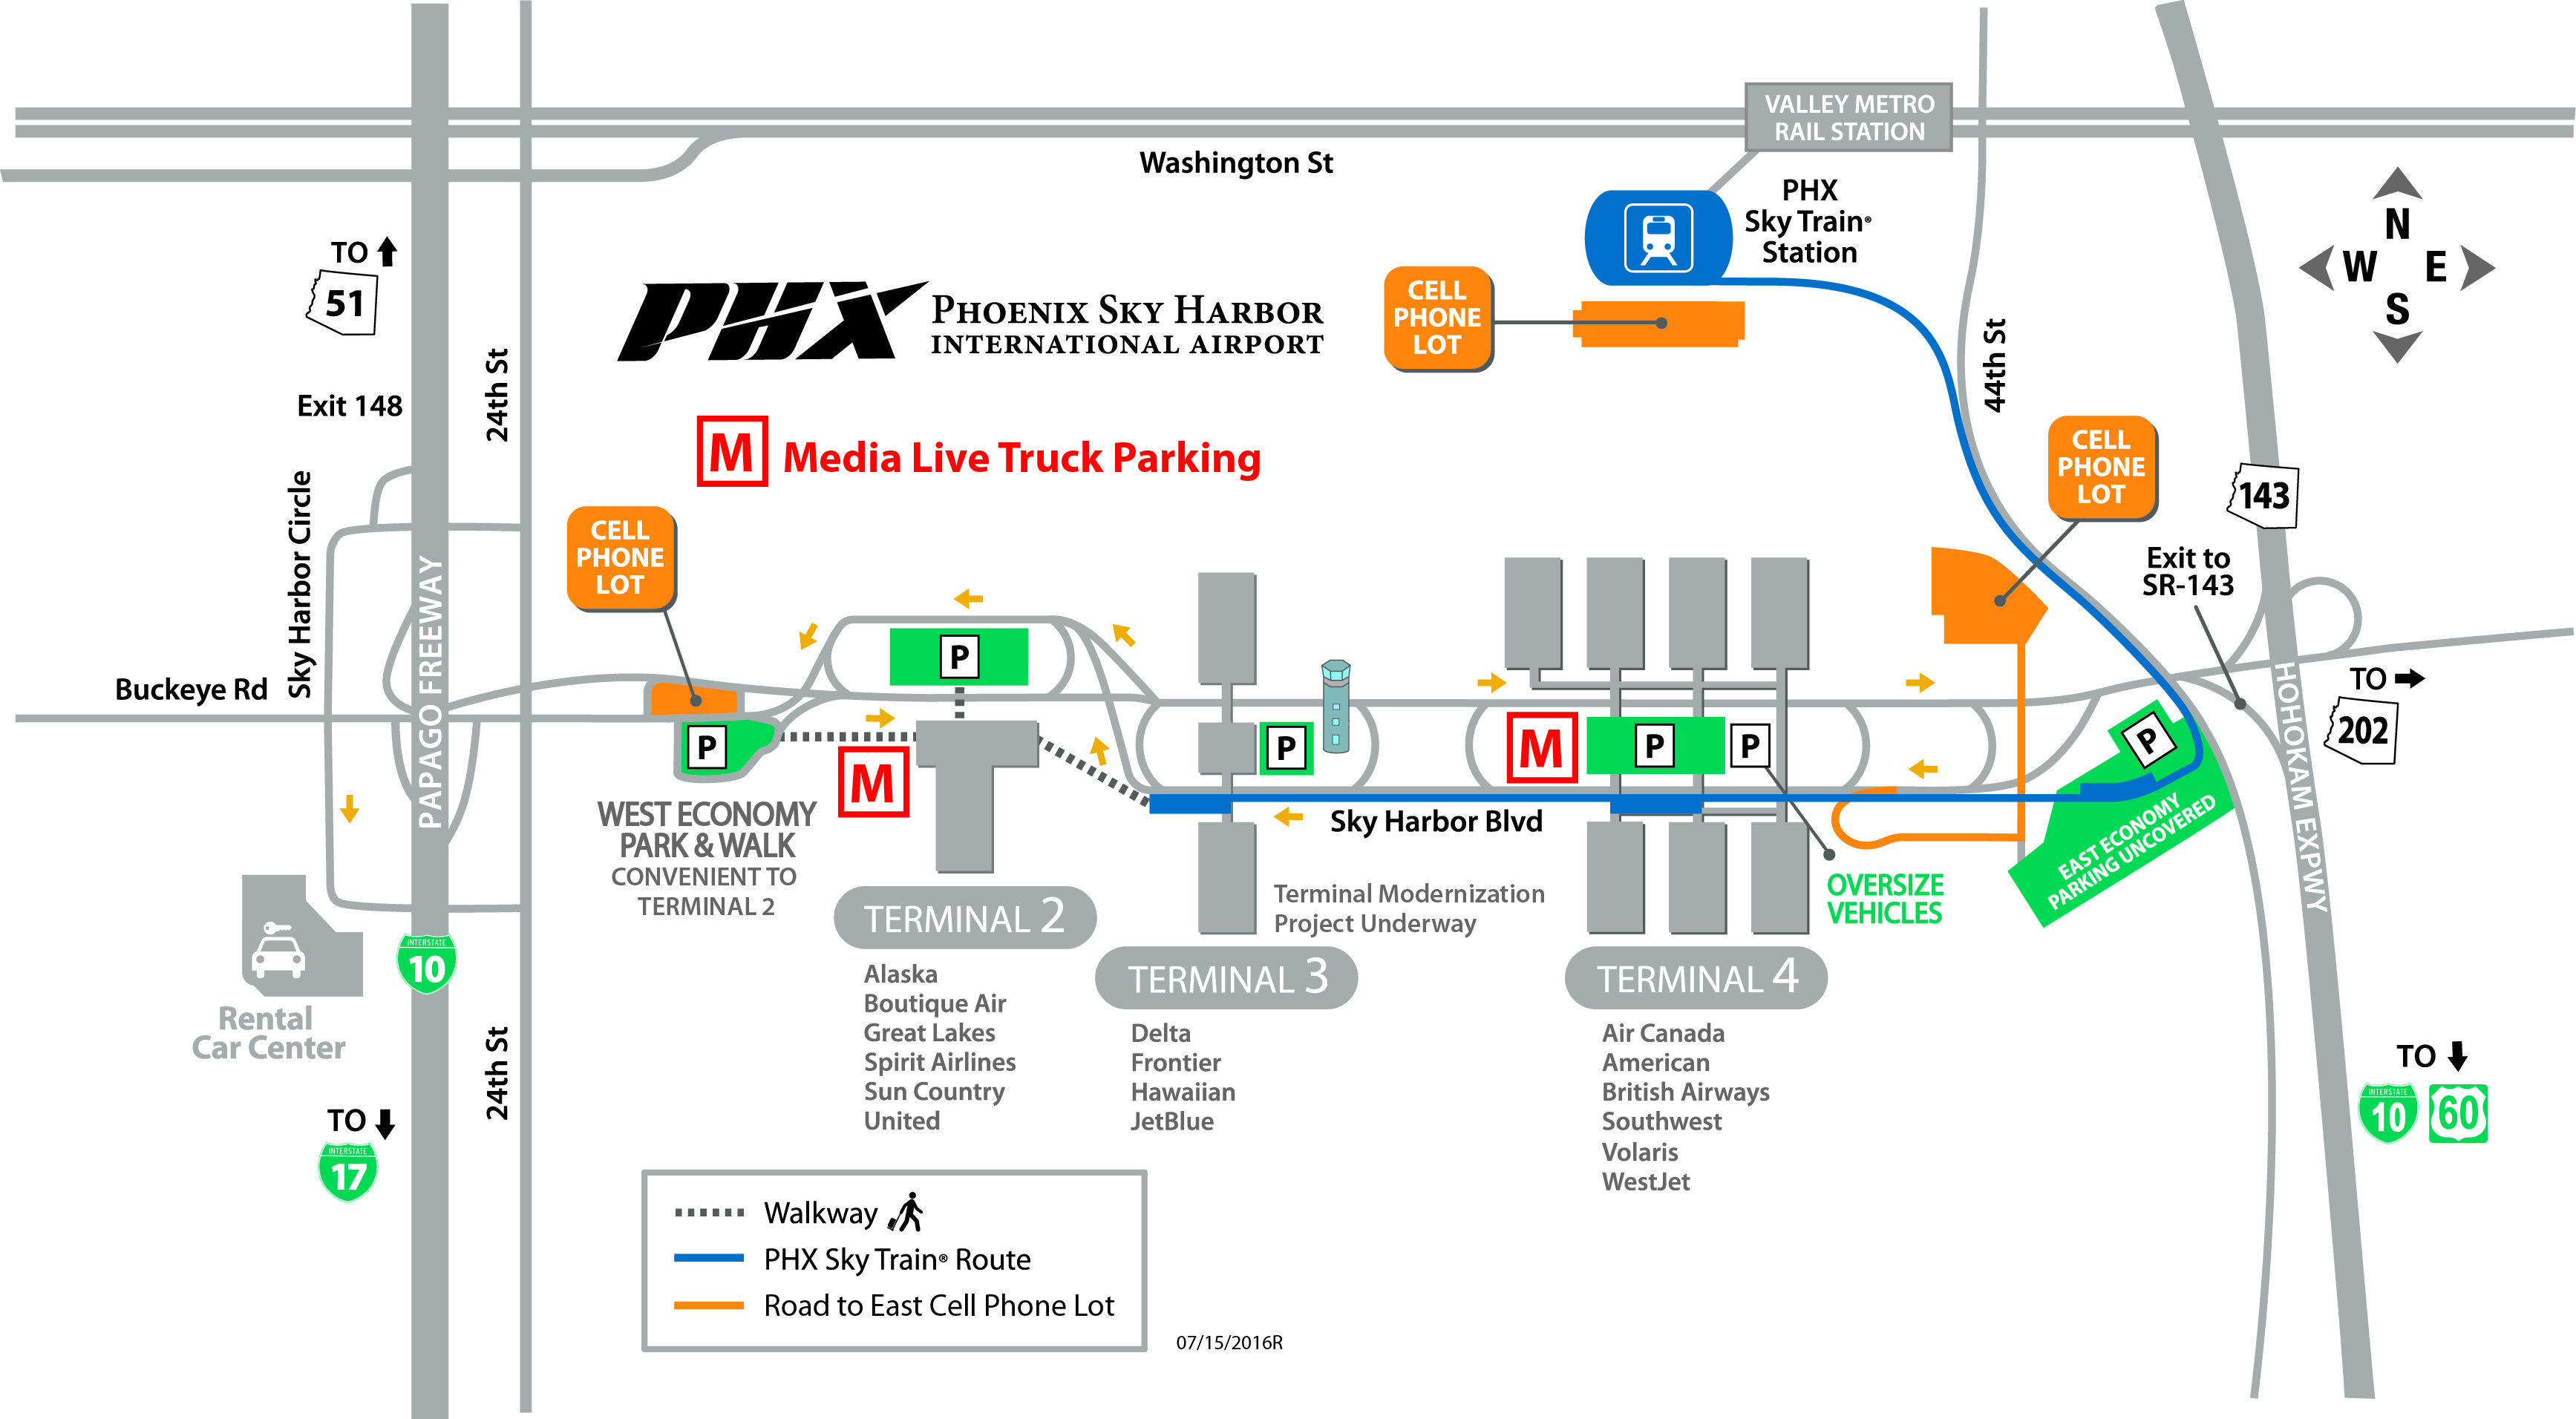 phoenix sky train map Phx Phoenix Sky Harbor International Airport Airport Map phoenix sky train map